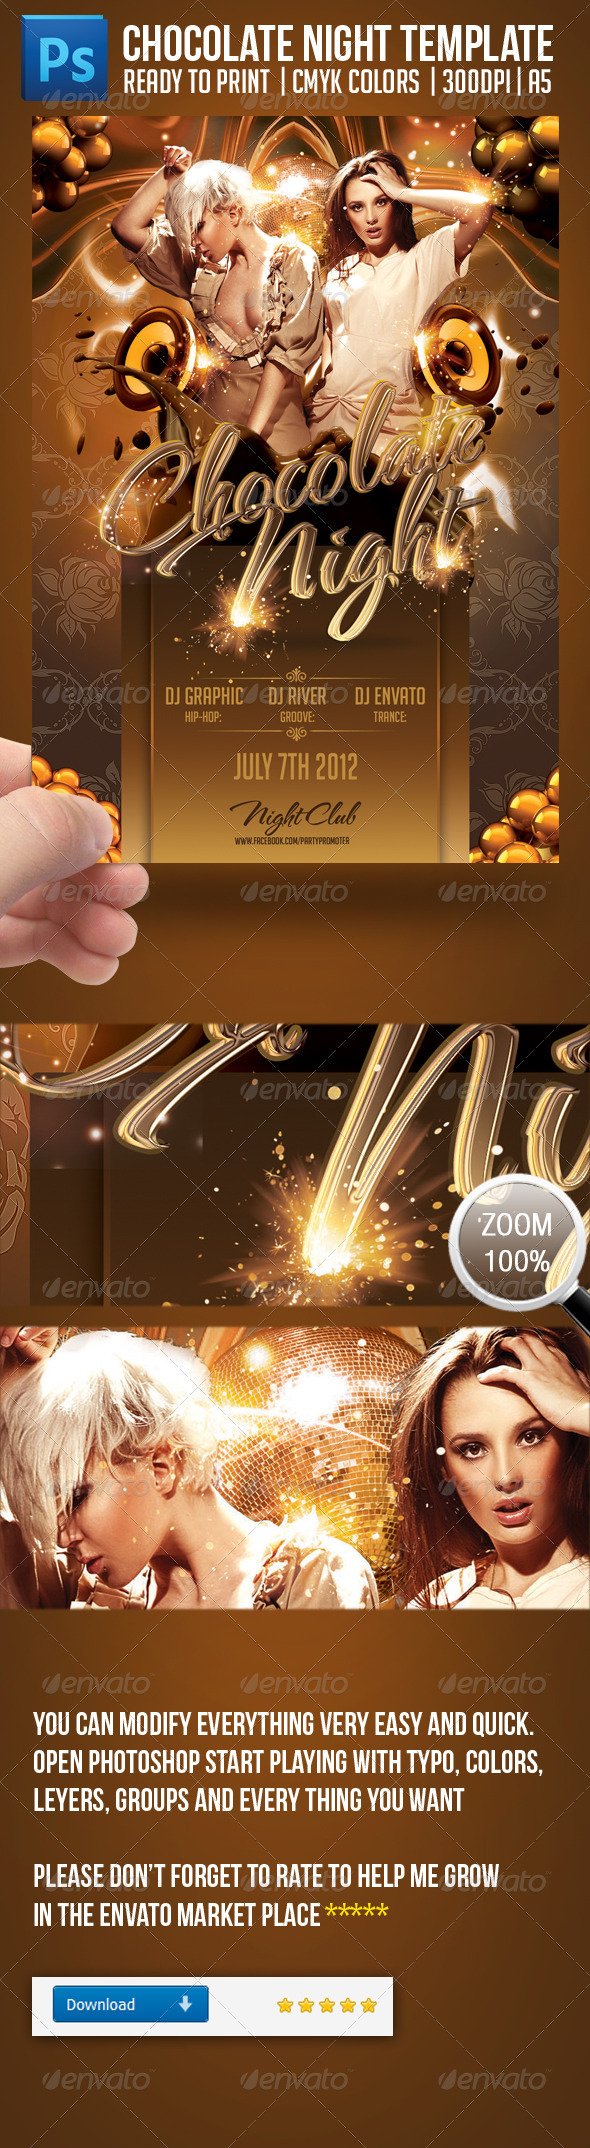 Chocolate Nights Party Flyer Template - Clubs & Parties Events